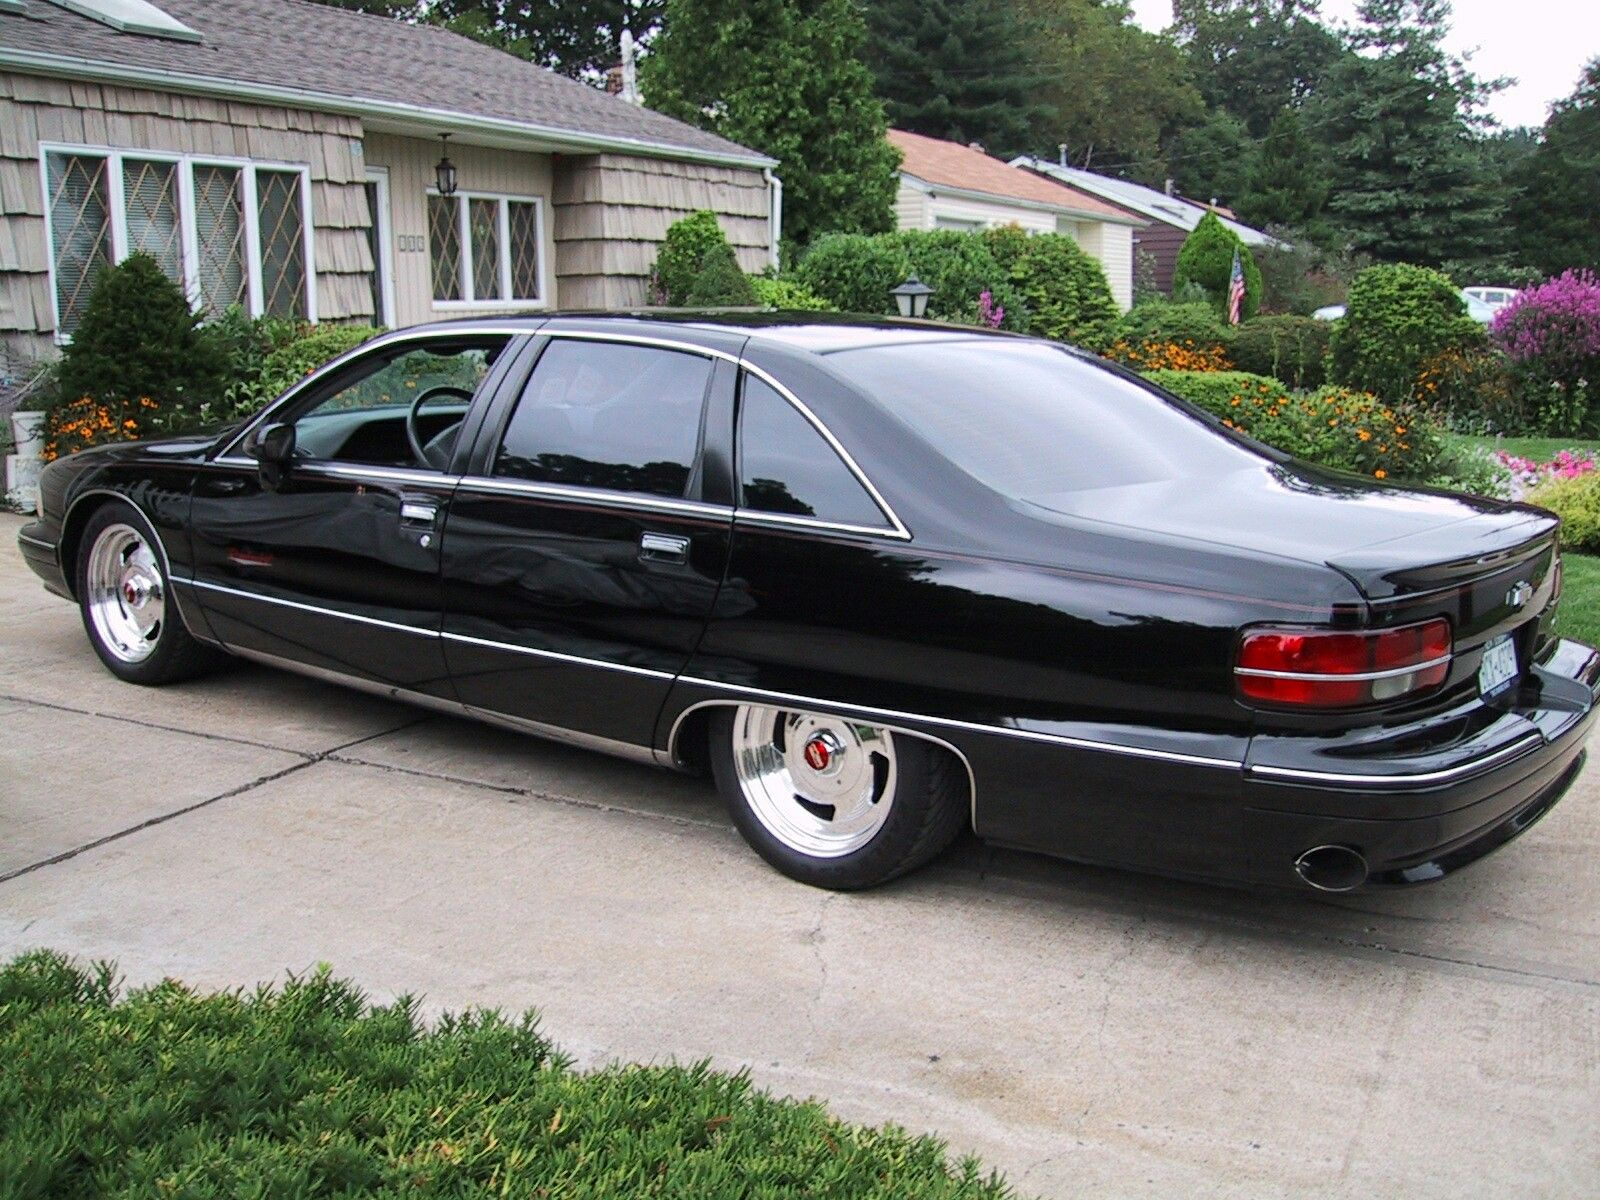 1991 Chevy Caprice Classic On Custom Wheels Classic